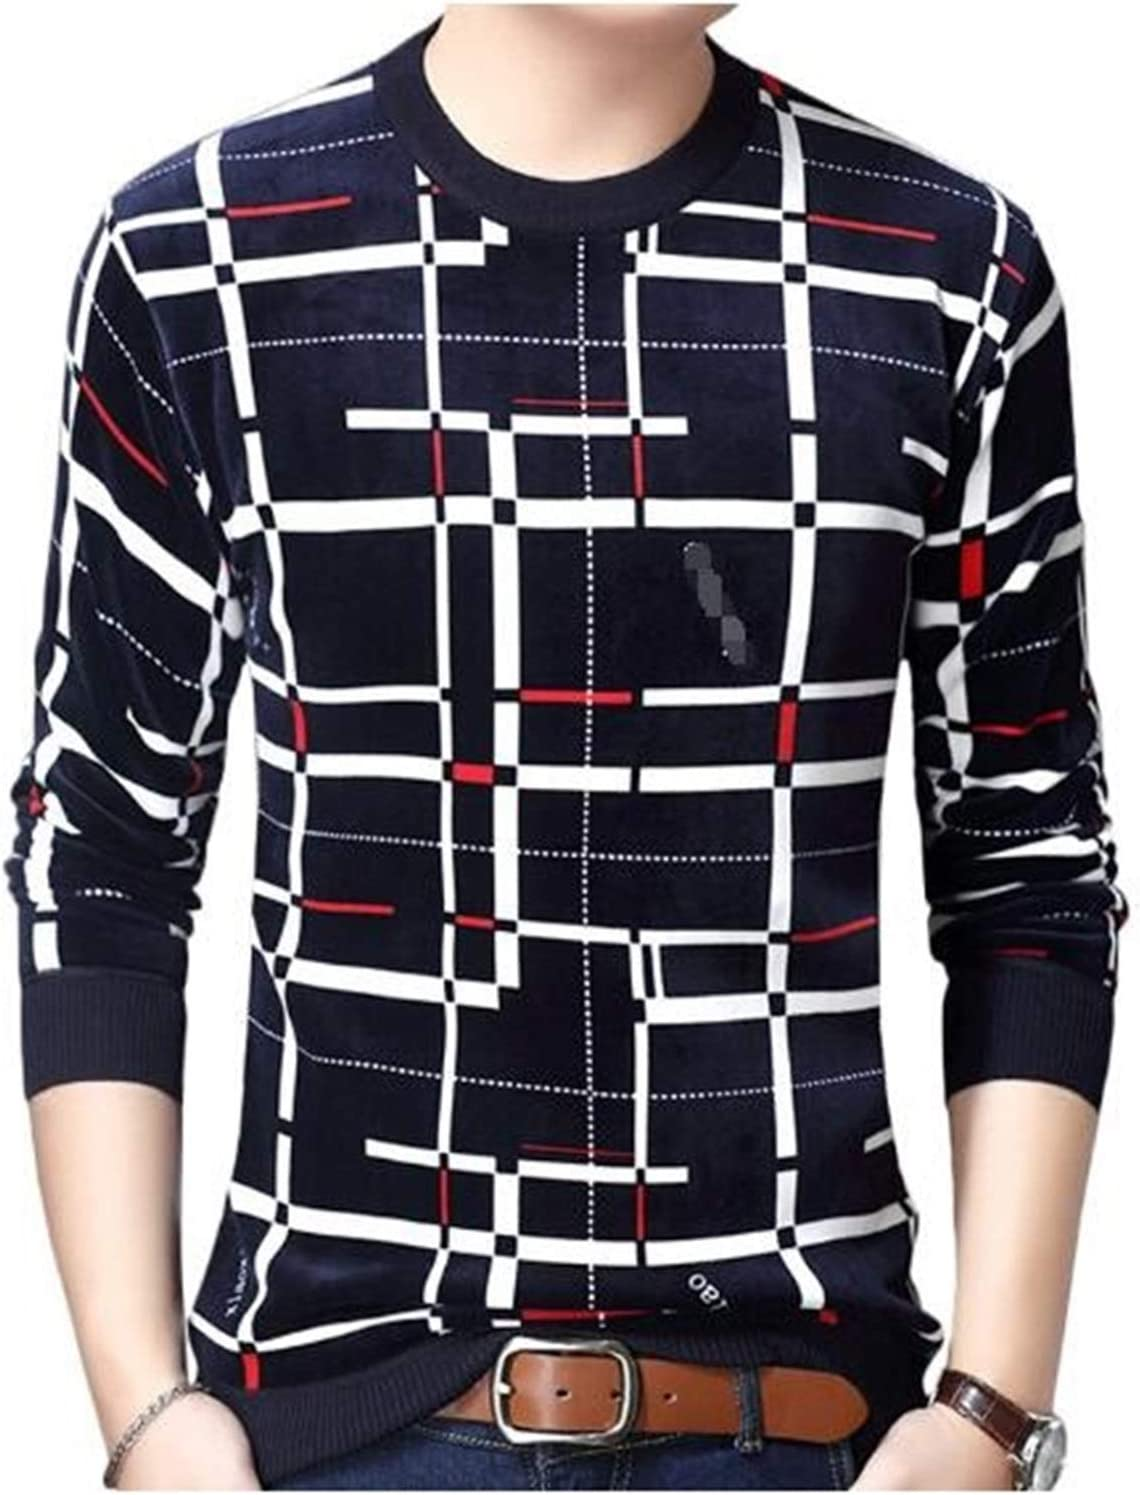 LSTGJ Pullover Plaid Men Sweater Mens Thick Winter Warm Jersey Knitted Sweaters Mens Wear Slim Fit Knitwear Lightweight (Color : Navy Blue, Size : XL.)